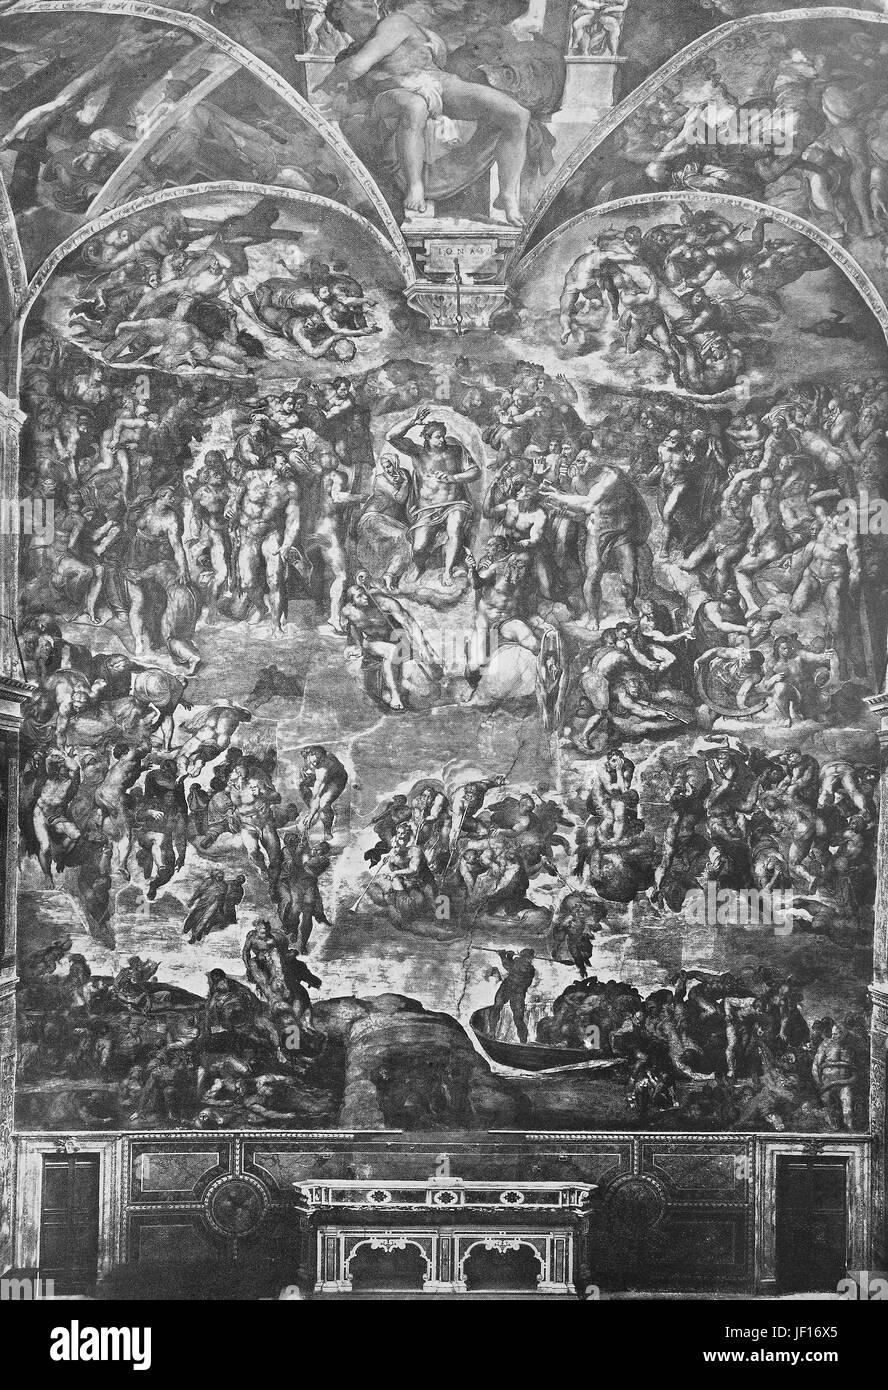 Historical photo of Last Judgment, Final Judgment, Day of Judgment, Judgment Day, Doomsday, or The Day of the Lord, - Stock Image